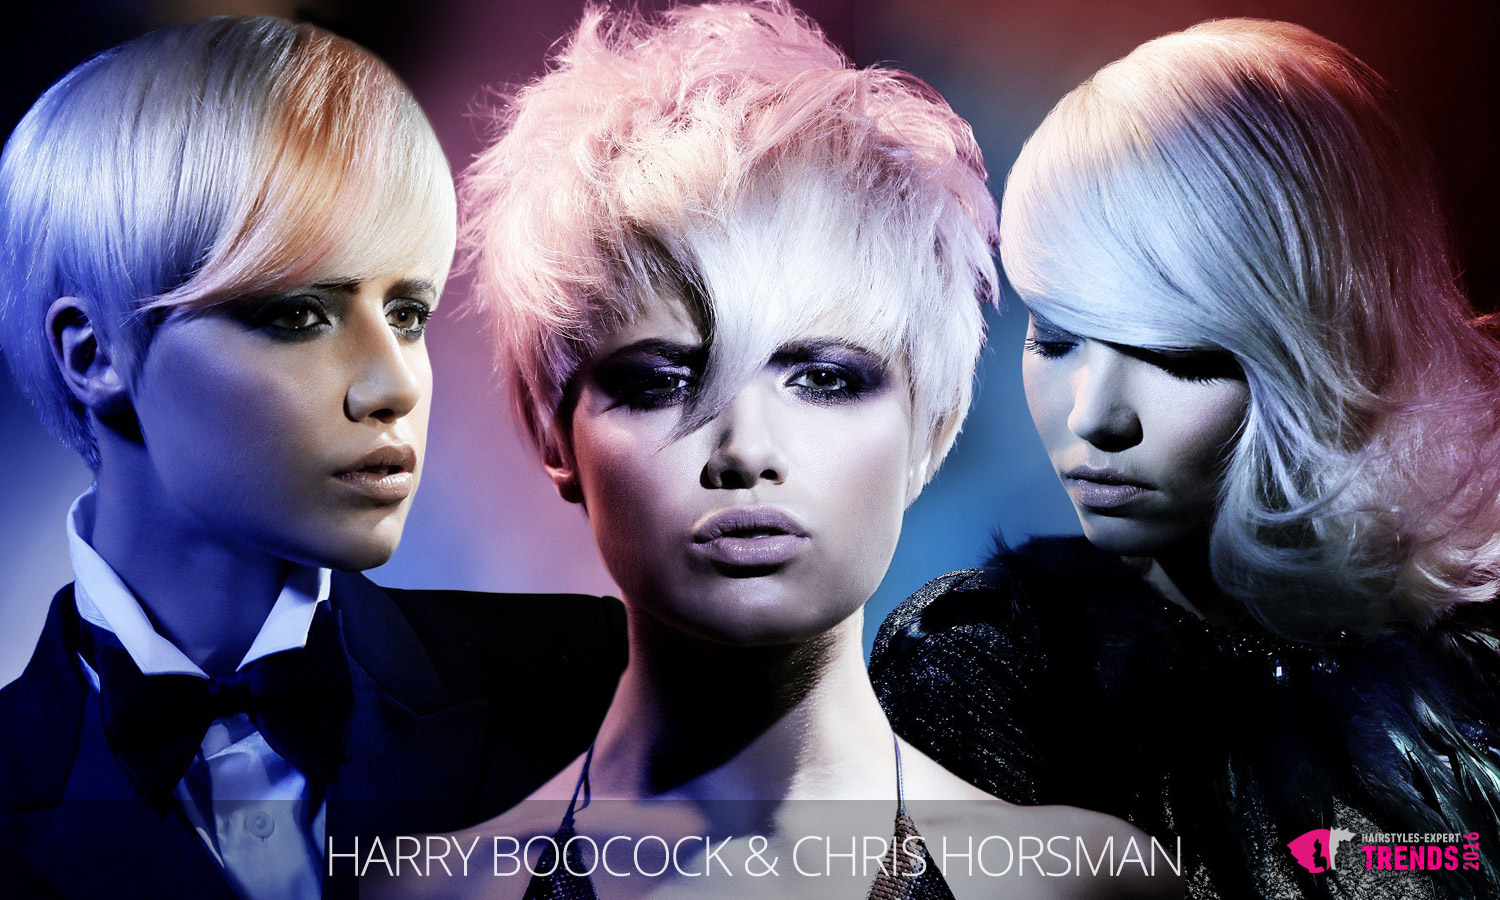 Pink and blue pastels can entirely change the blond hair. (Hairstyles are from Harry collection, hair: Harry Boocock and Chris Horsman, photo: Jim Crone, MUA: Lan Nguyen, styling: Desiree Leader.)